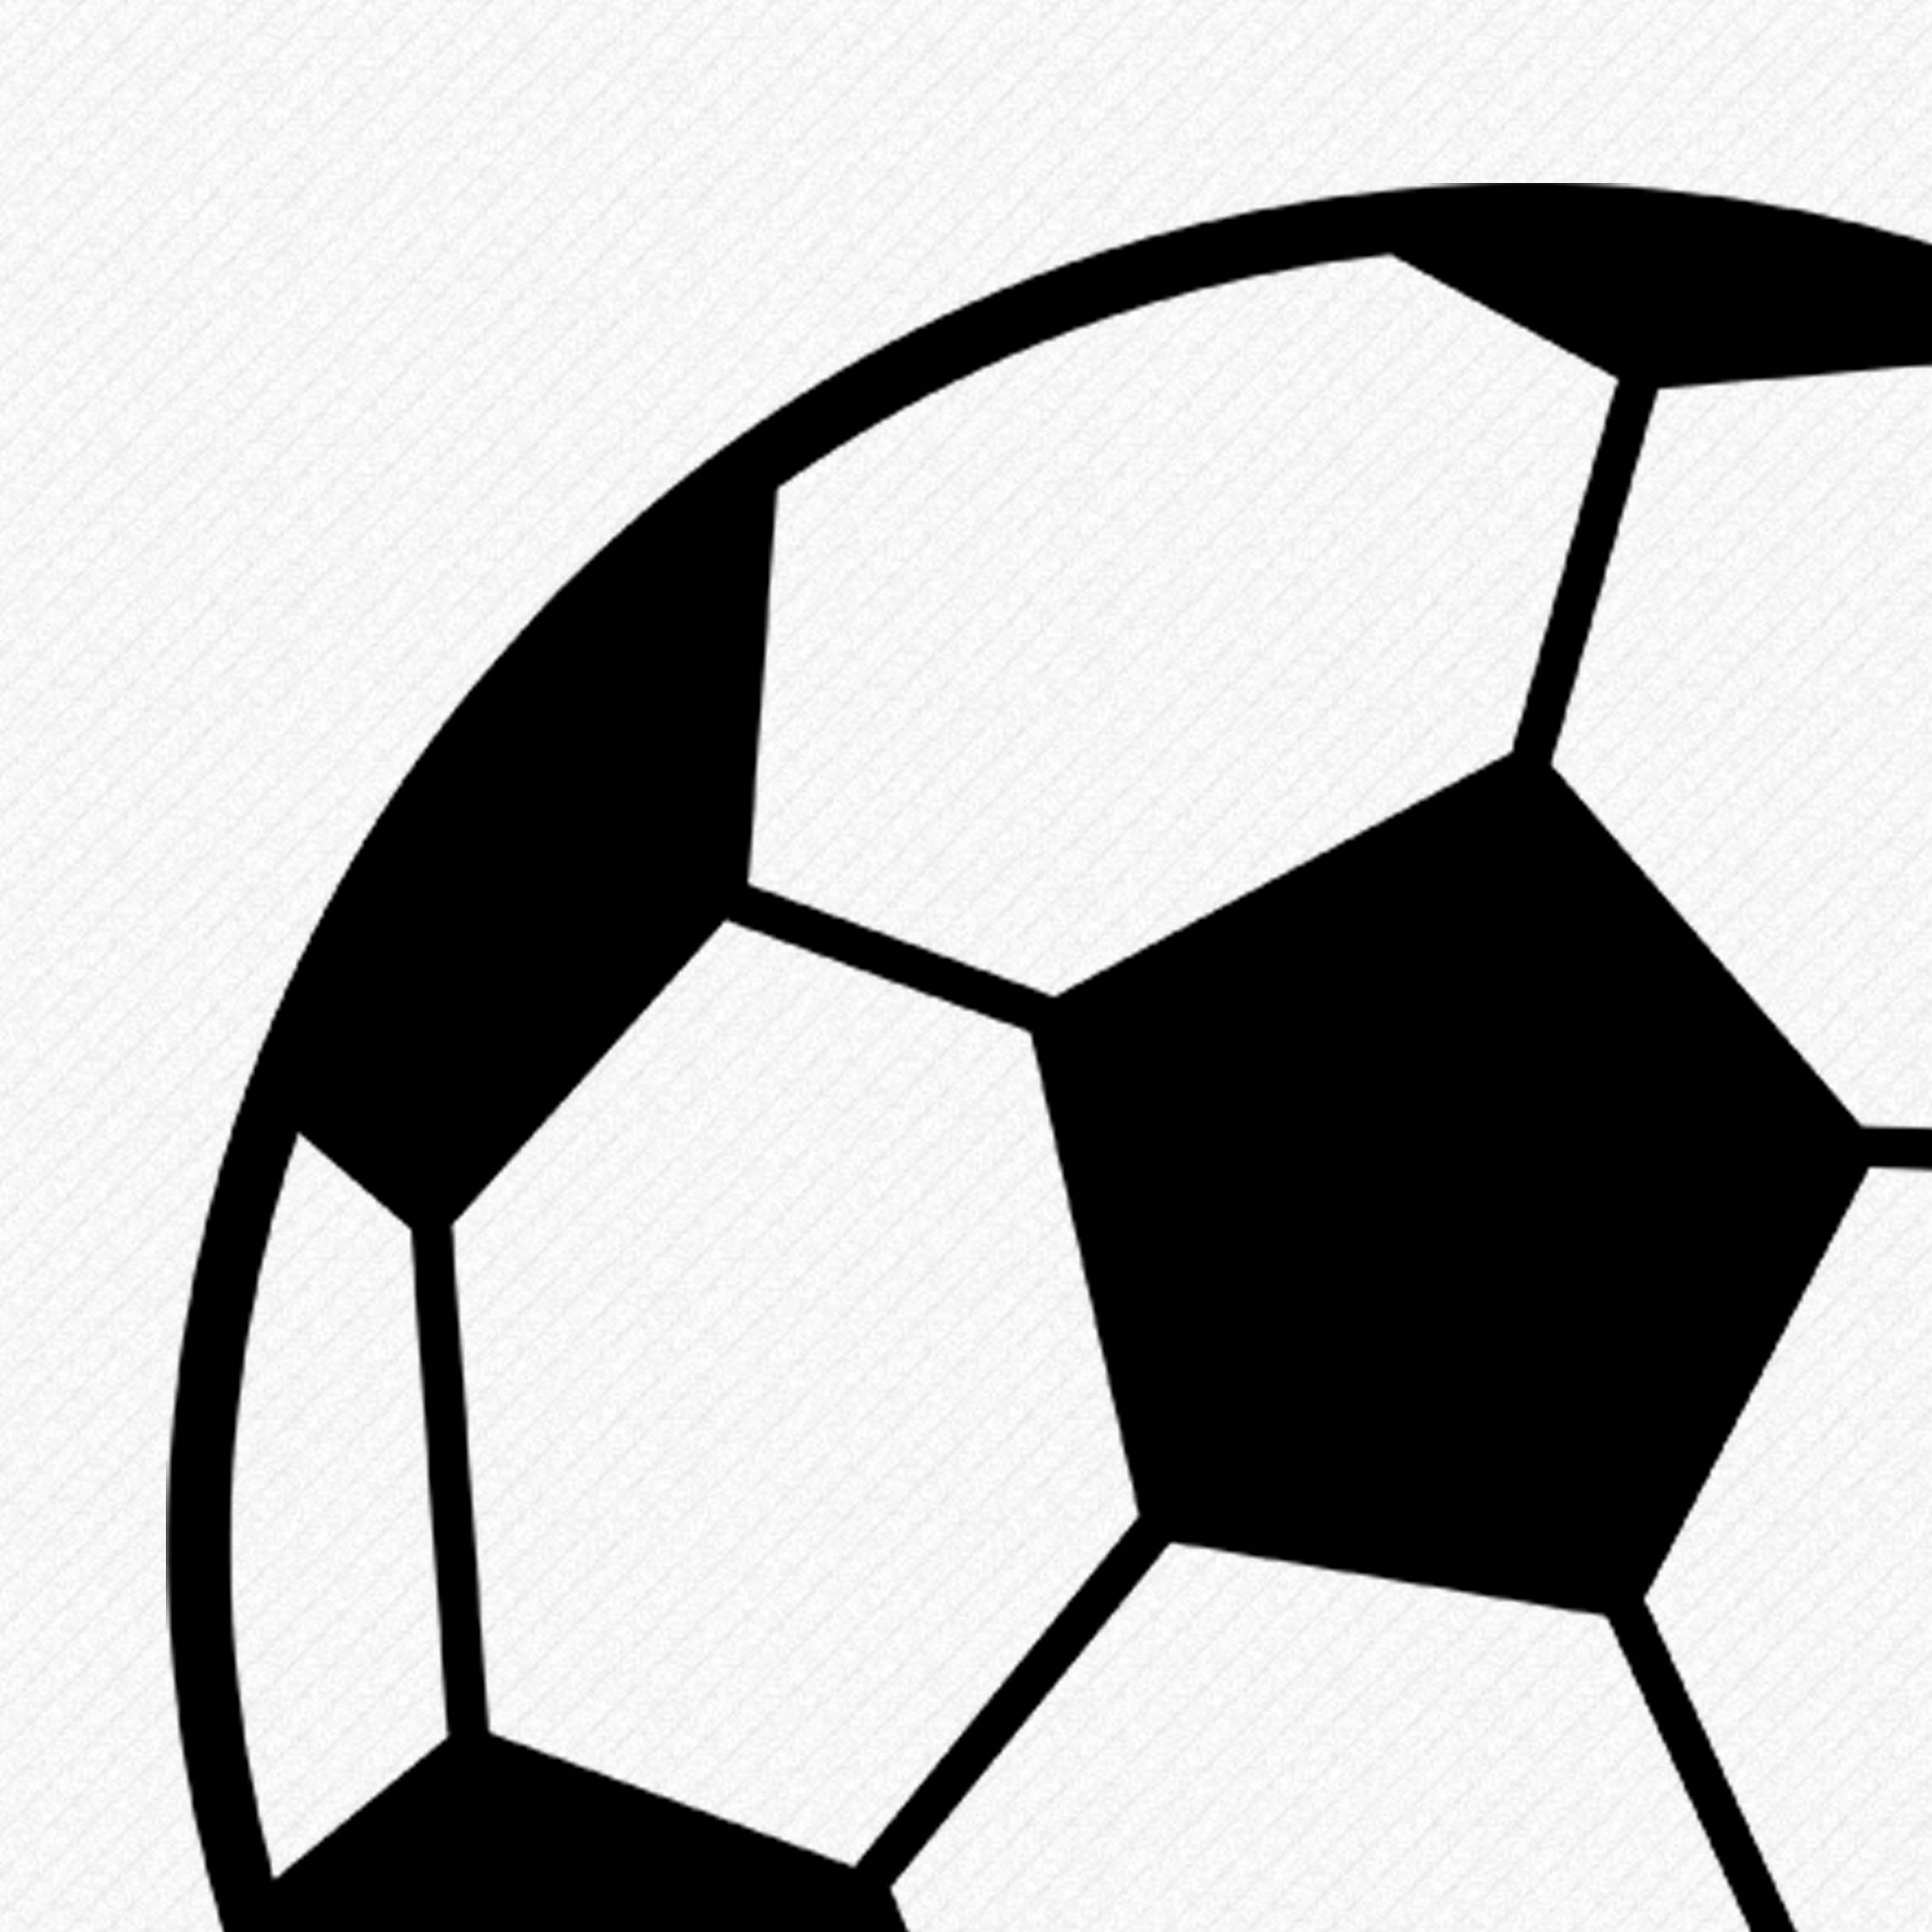 2375x2375 Soccer Ball Football Svg, Soccer Silhouette, Monogram Soccer Ball